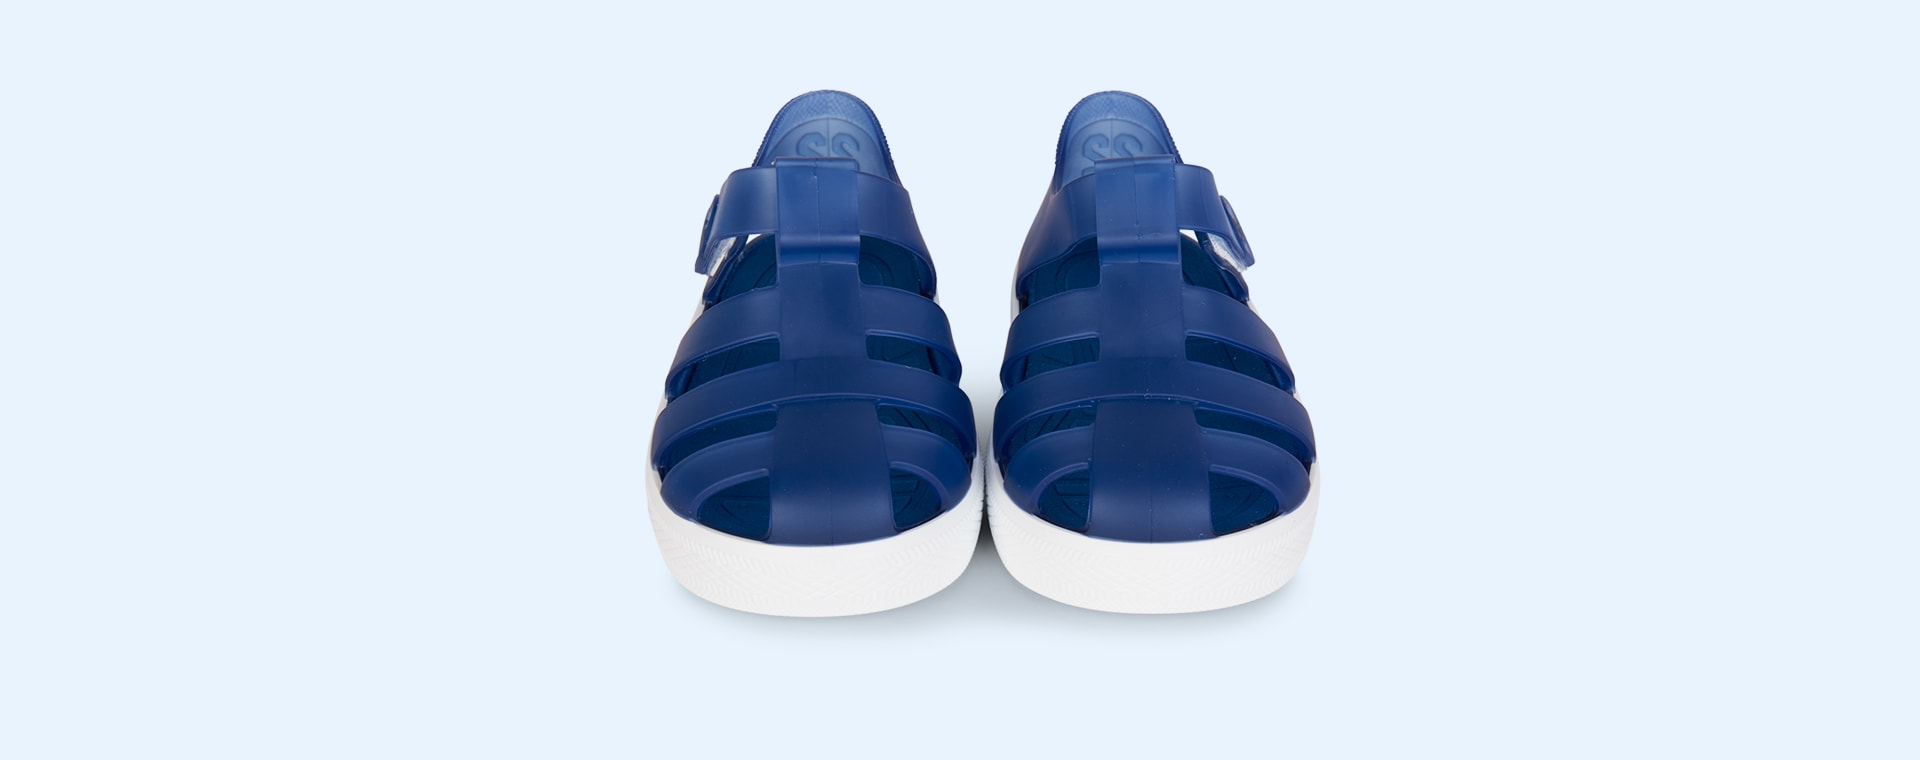 Navy igor Star Velcro Jelly shoes